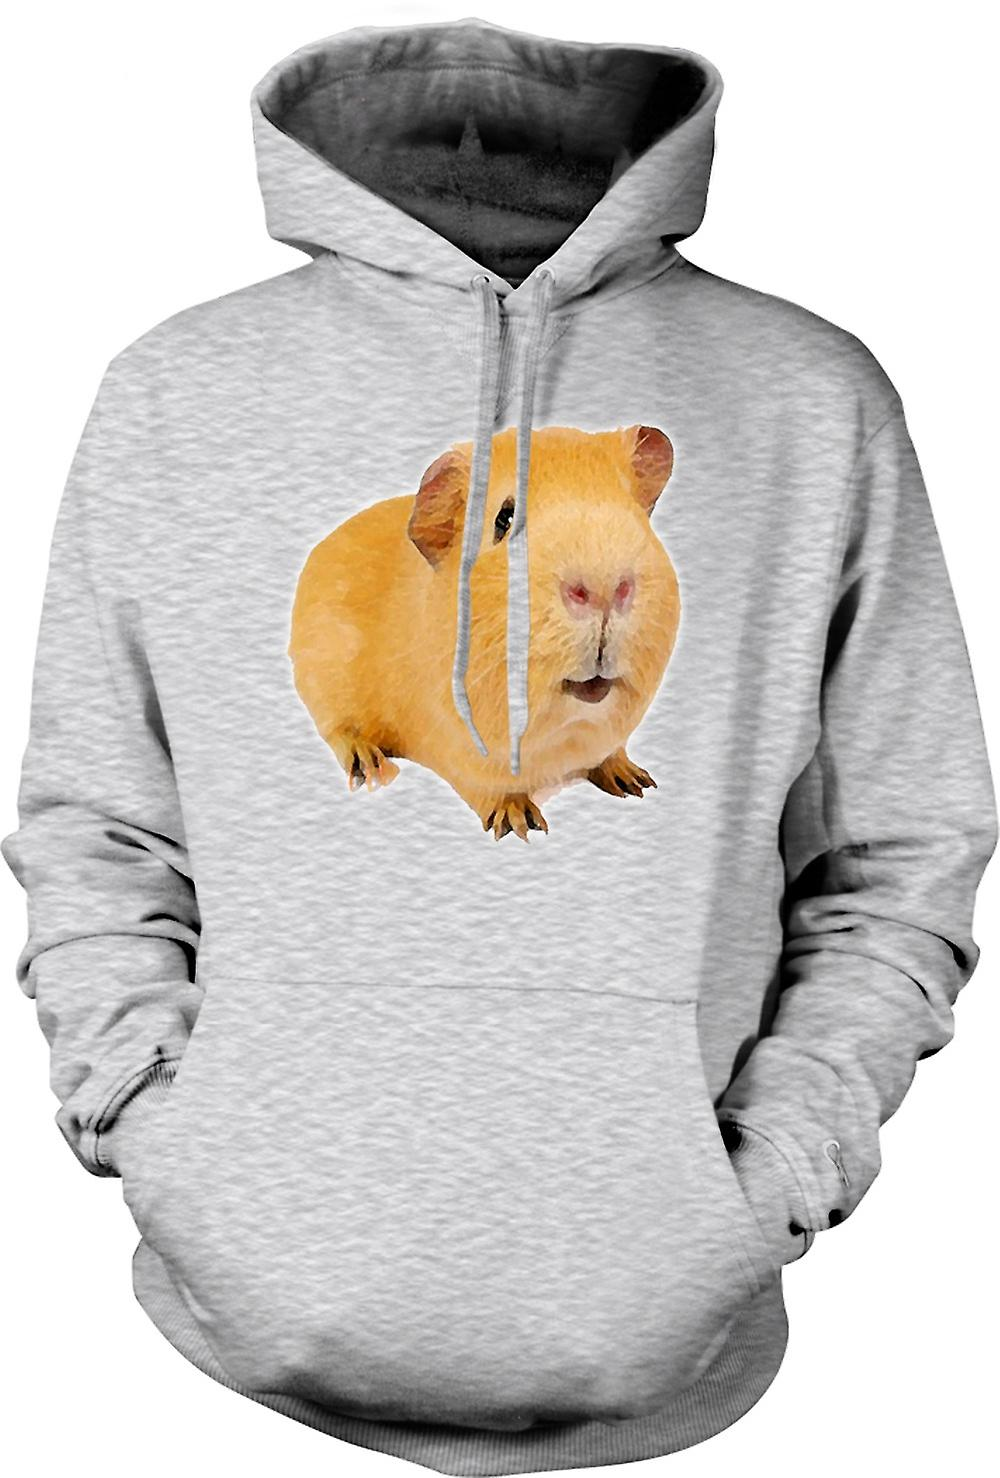 Mens Hoodie - Guinea Pig 2 - Pet Animal